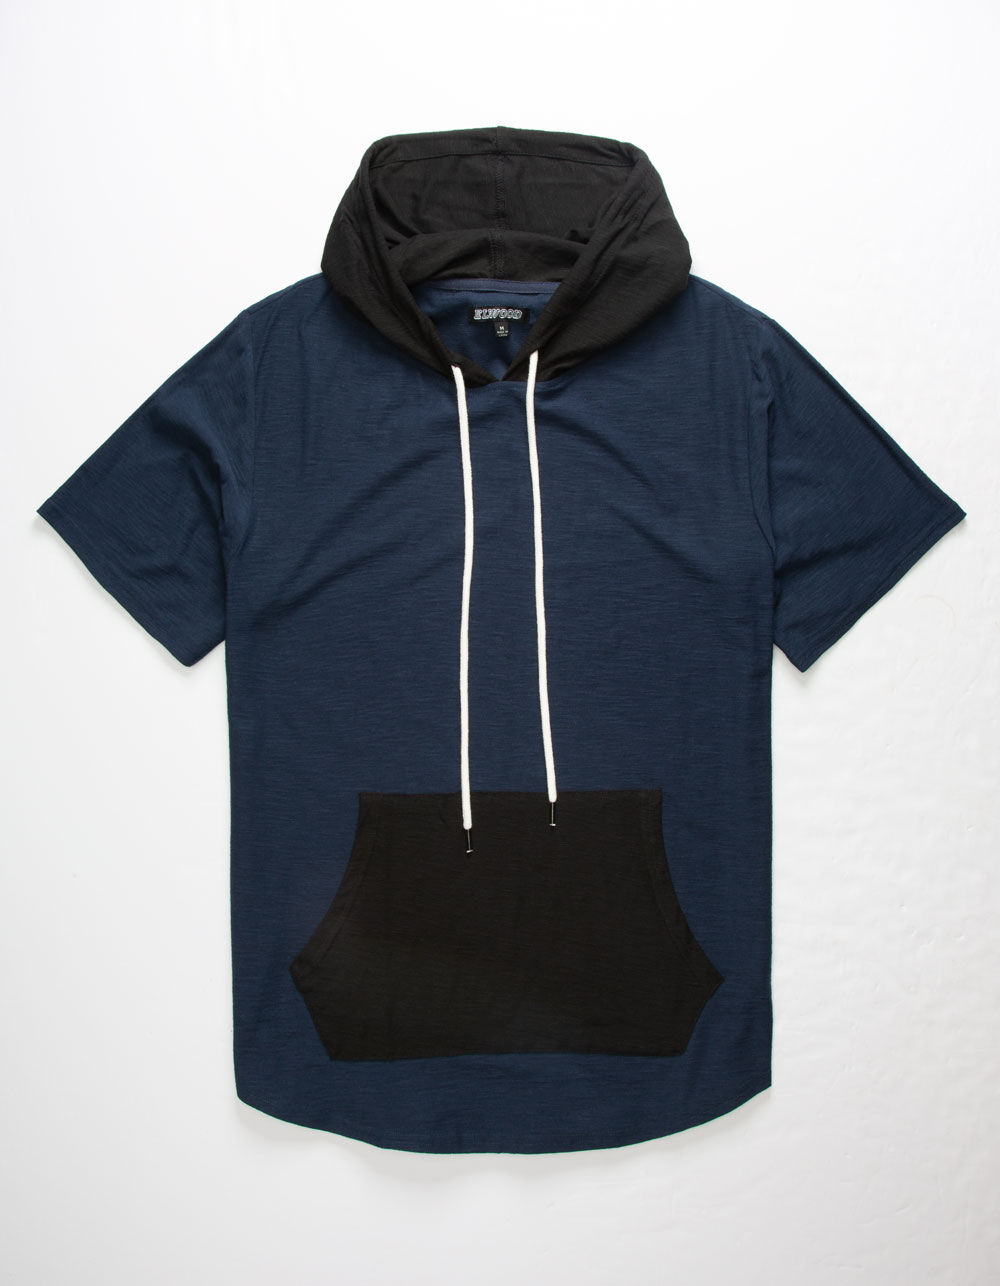 ELWOOD Color Block Navy Hooded T-Shirt